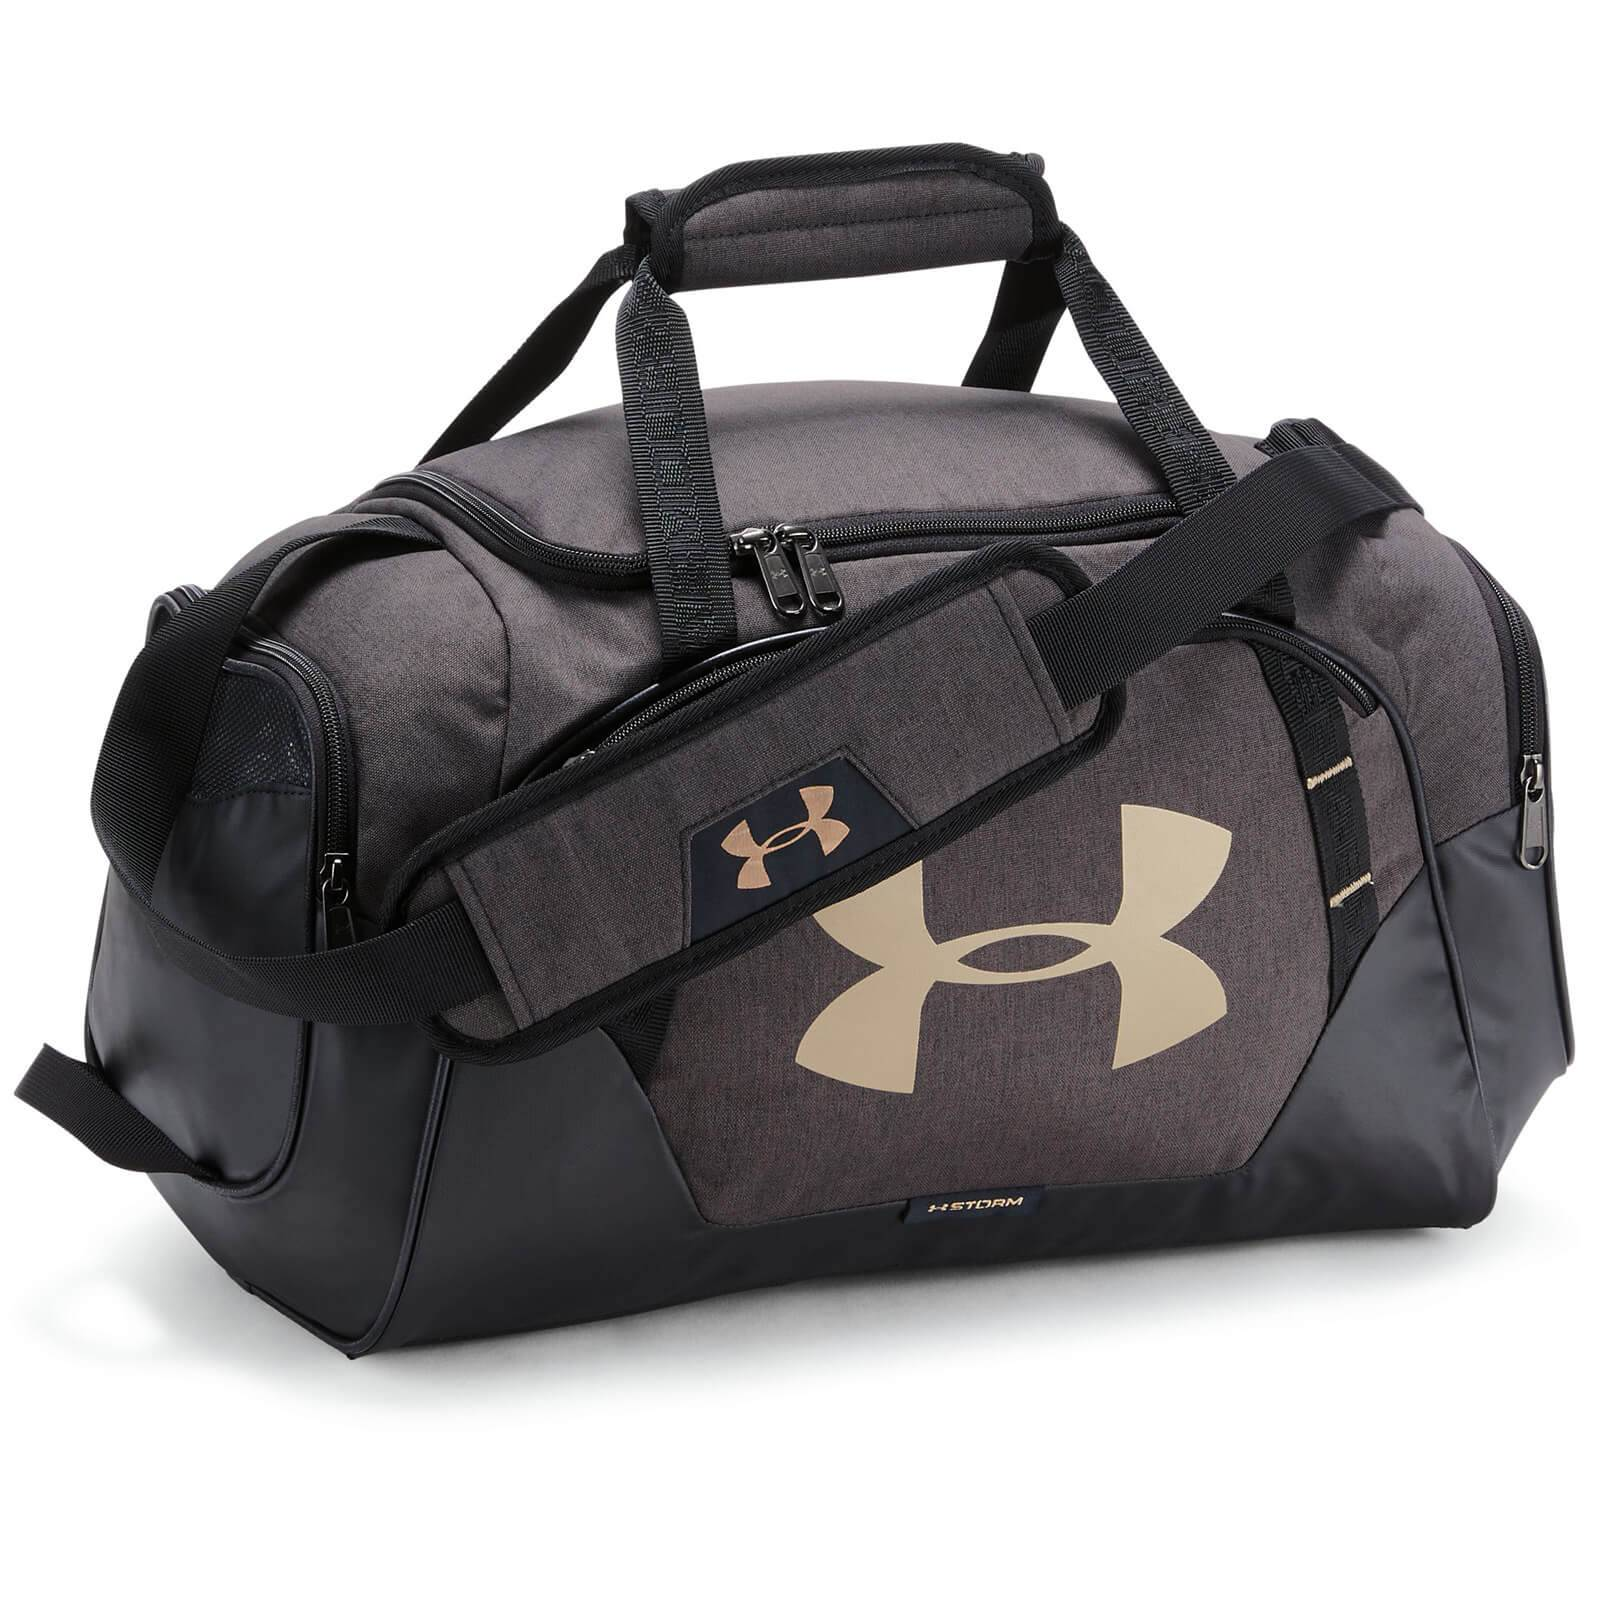 Under Armour Undeniable 3.0 Duffle Bag - Extra Small - Black